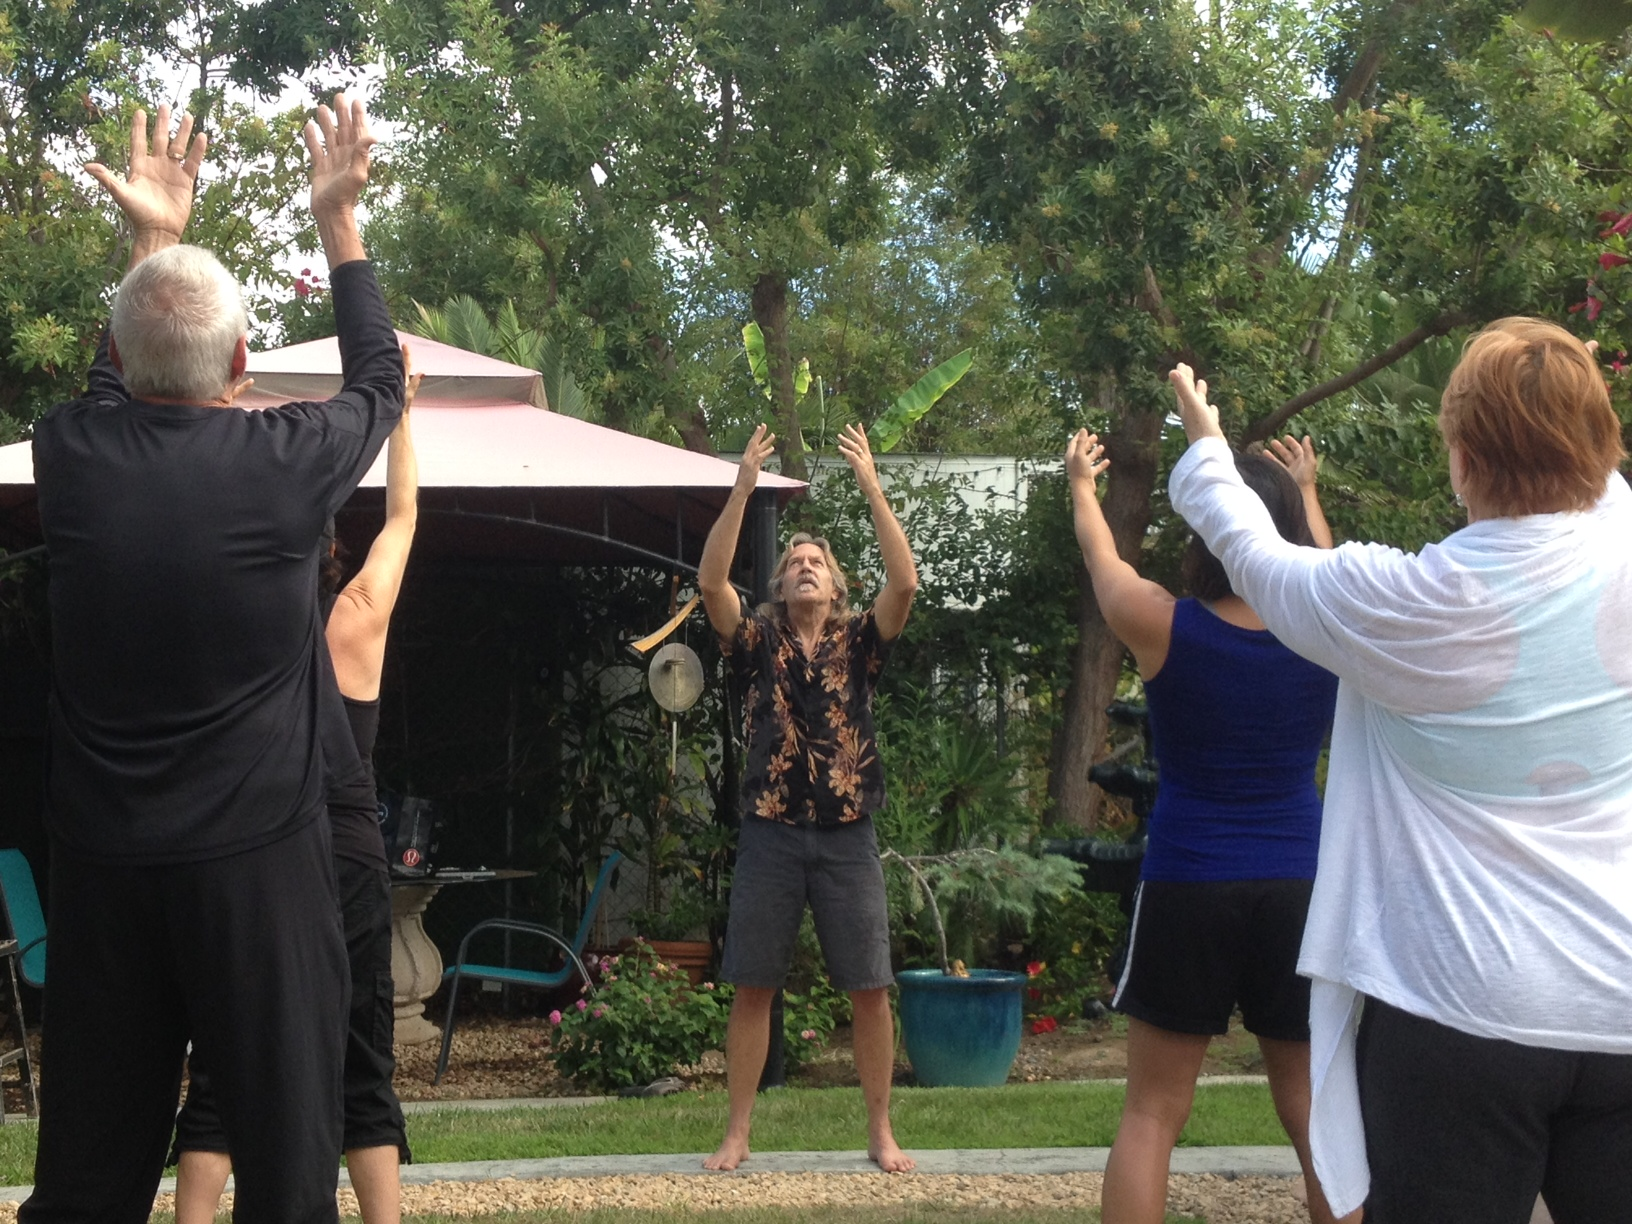 Qigong helps harness balance